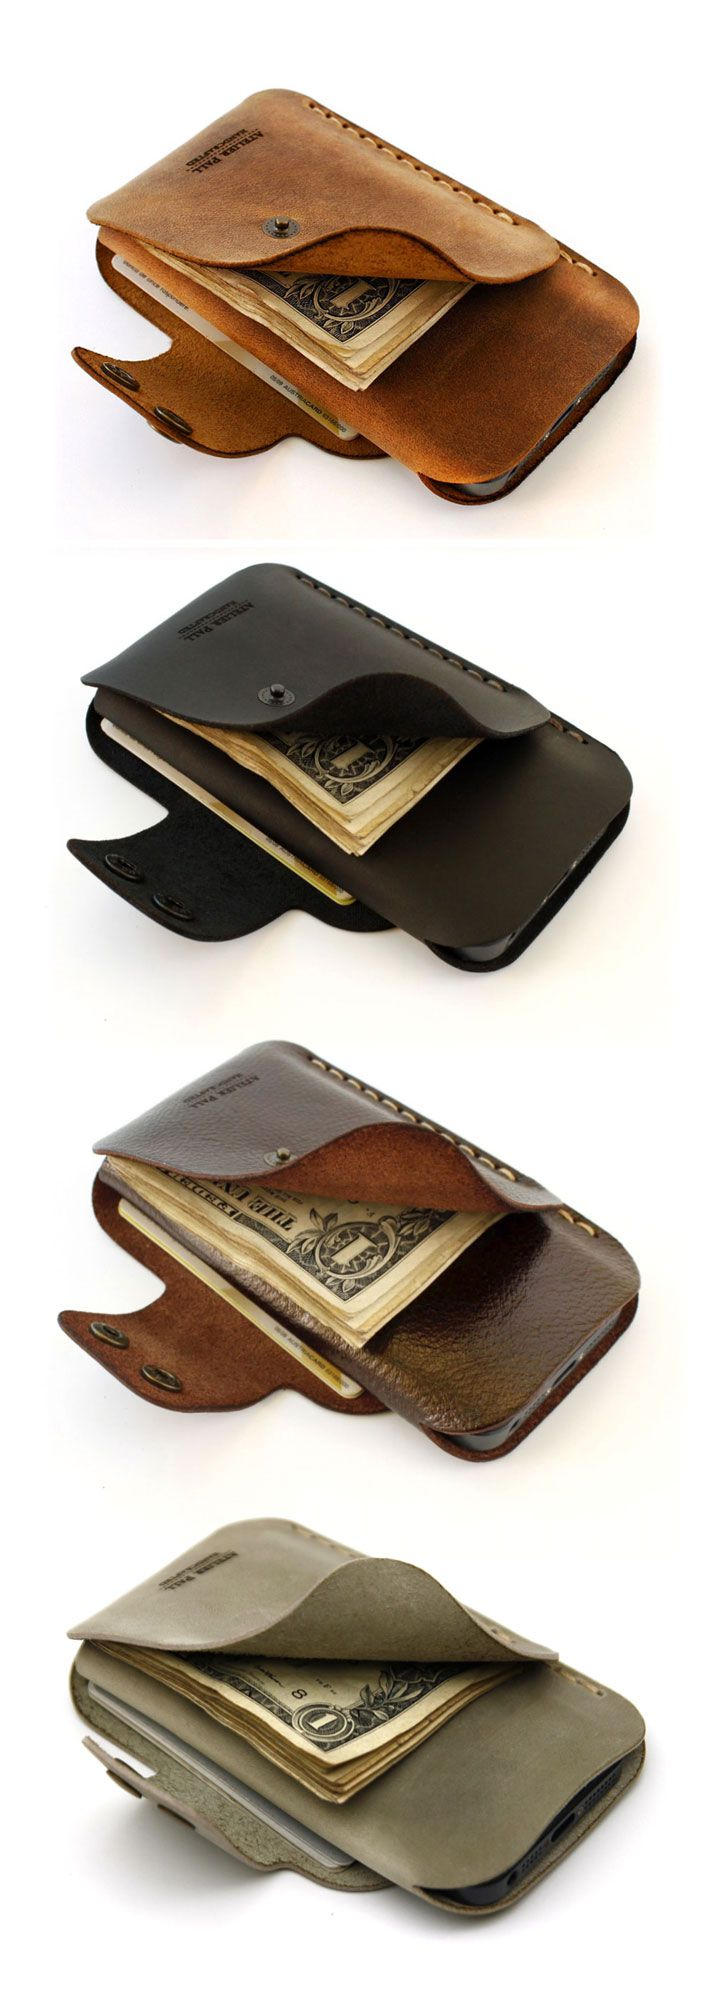 iPhone wallets for men